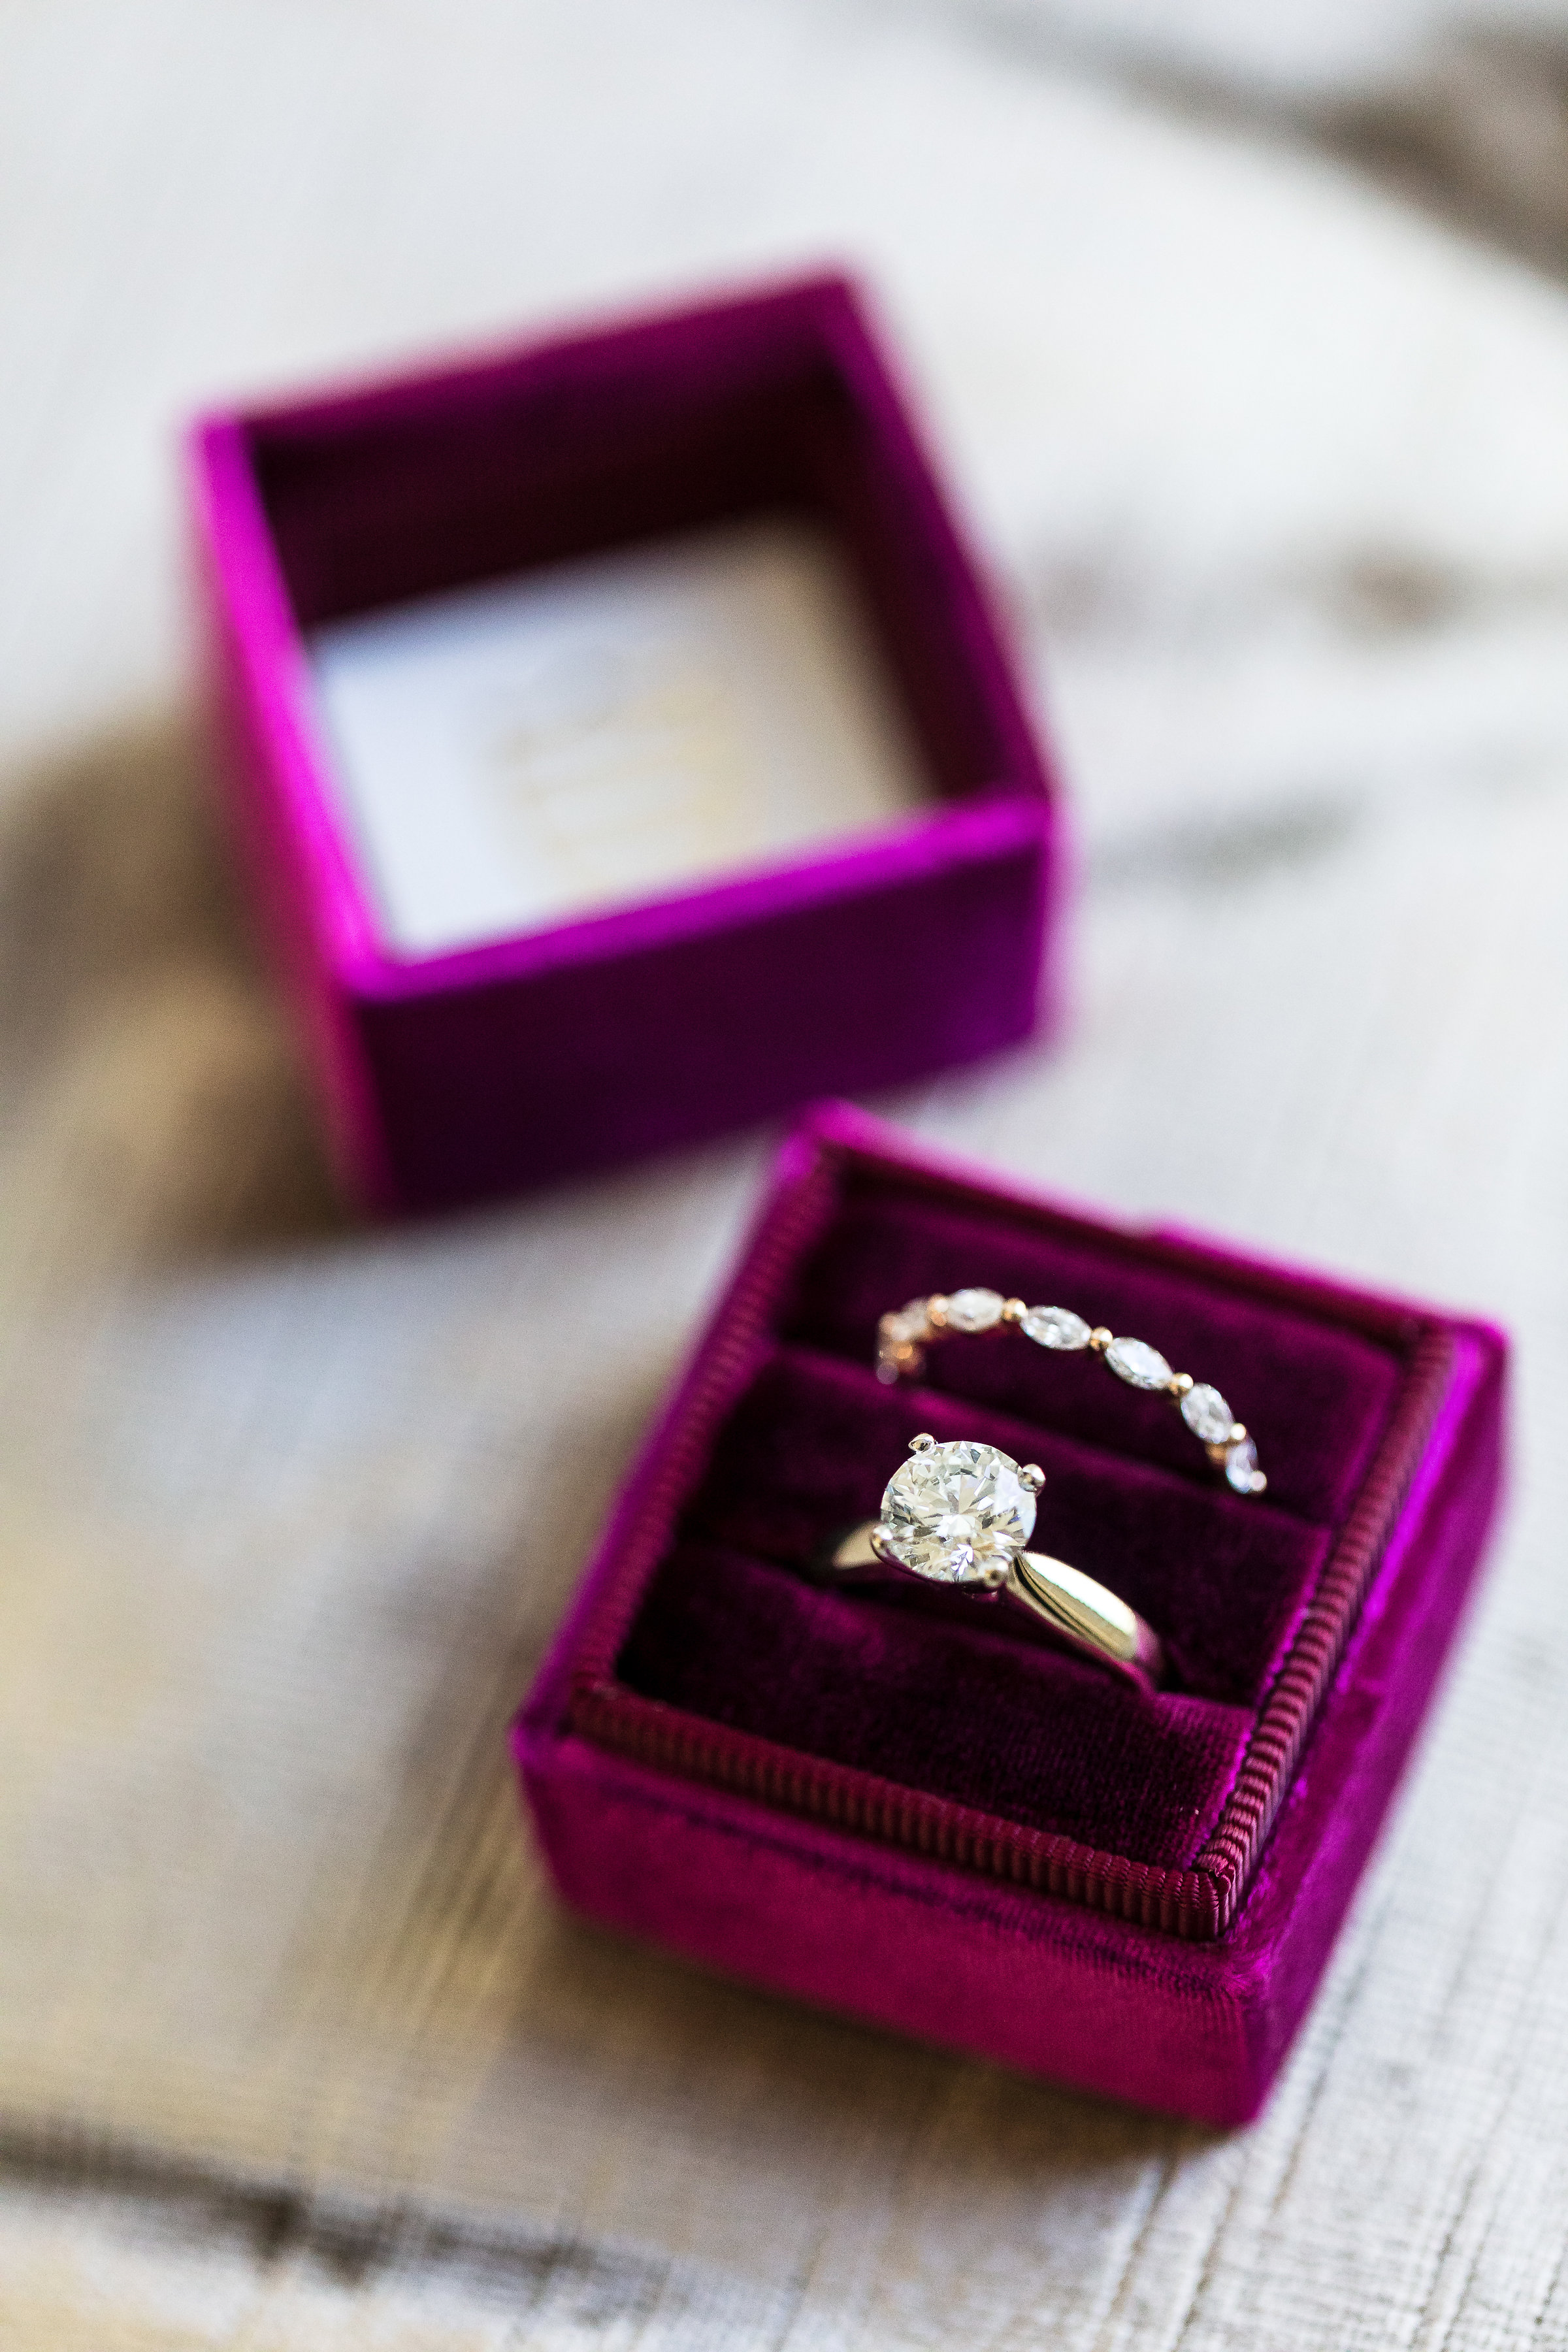 Engagement Ring in Magenta Ring Box.Wedding Planner: Andrea Eppolito Events    Photography  Brian Leahy    Videography  HOO Films    Venue & Catering:  Mandarin Oriental  / Waldorf Astoria   Floral & Decor: Destinations by Design    Lighting: LED Unplugged    Music:  DJ Breeze II    Hair & Make Up: Amelia C & Co